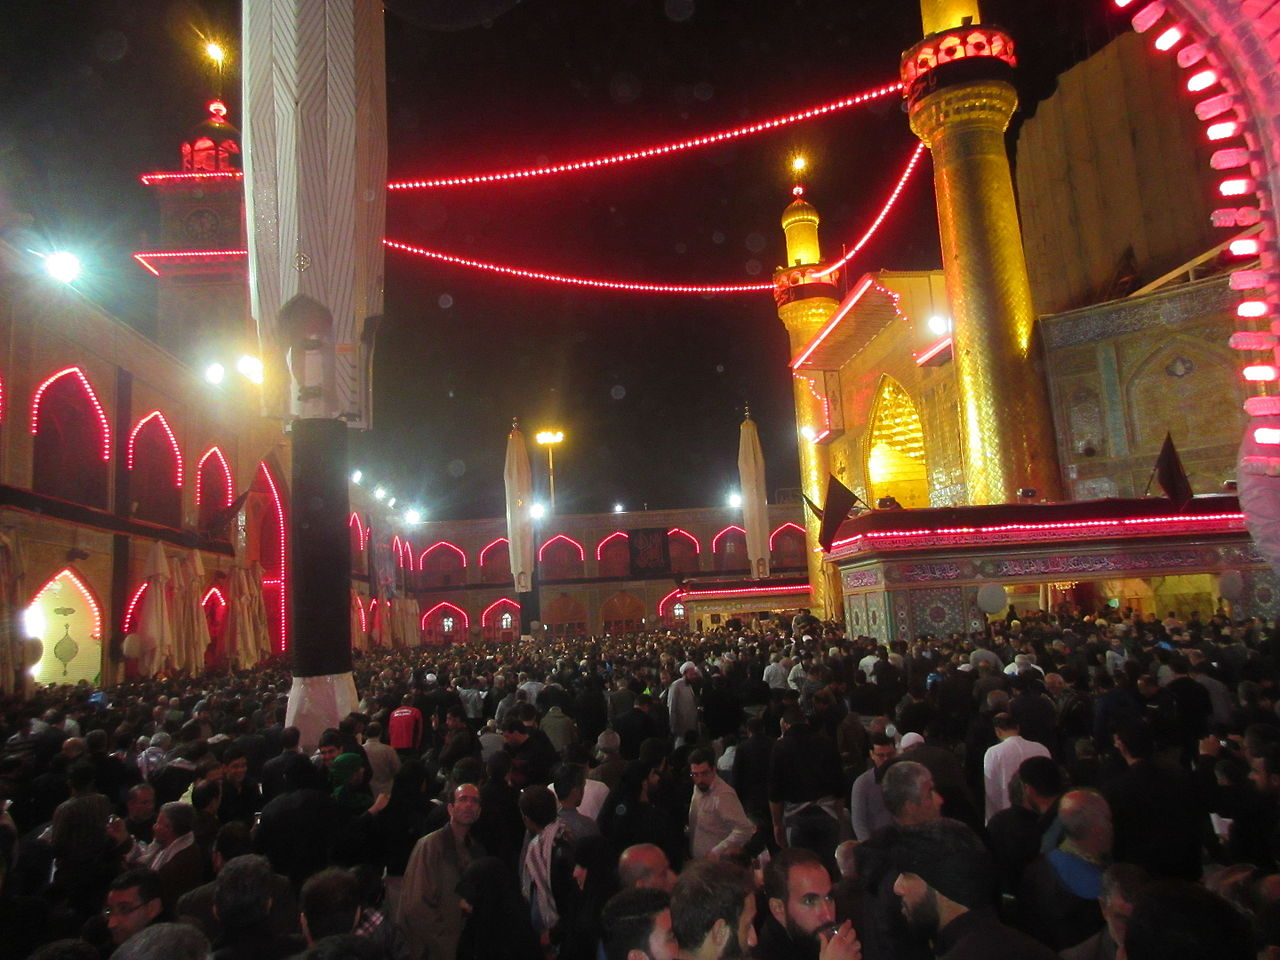 Maula Ali Shrine Wallpaper: File:Imam Ali's Shrine, Arbaeen 2015.JPG